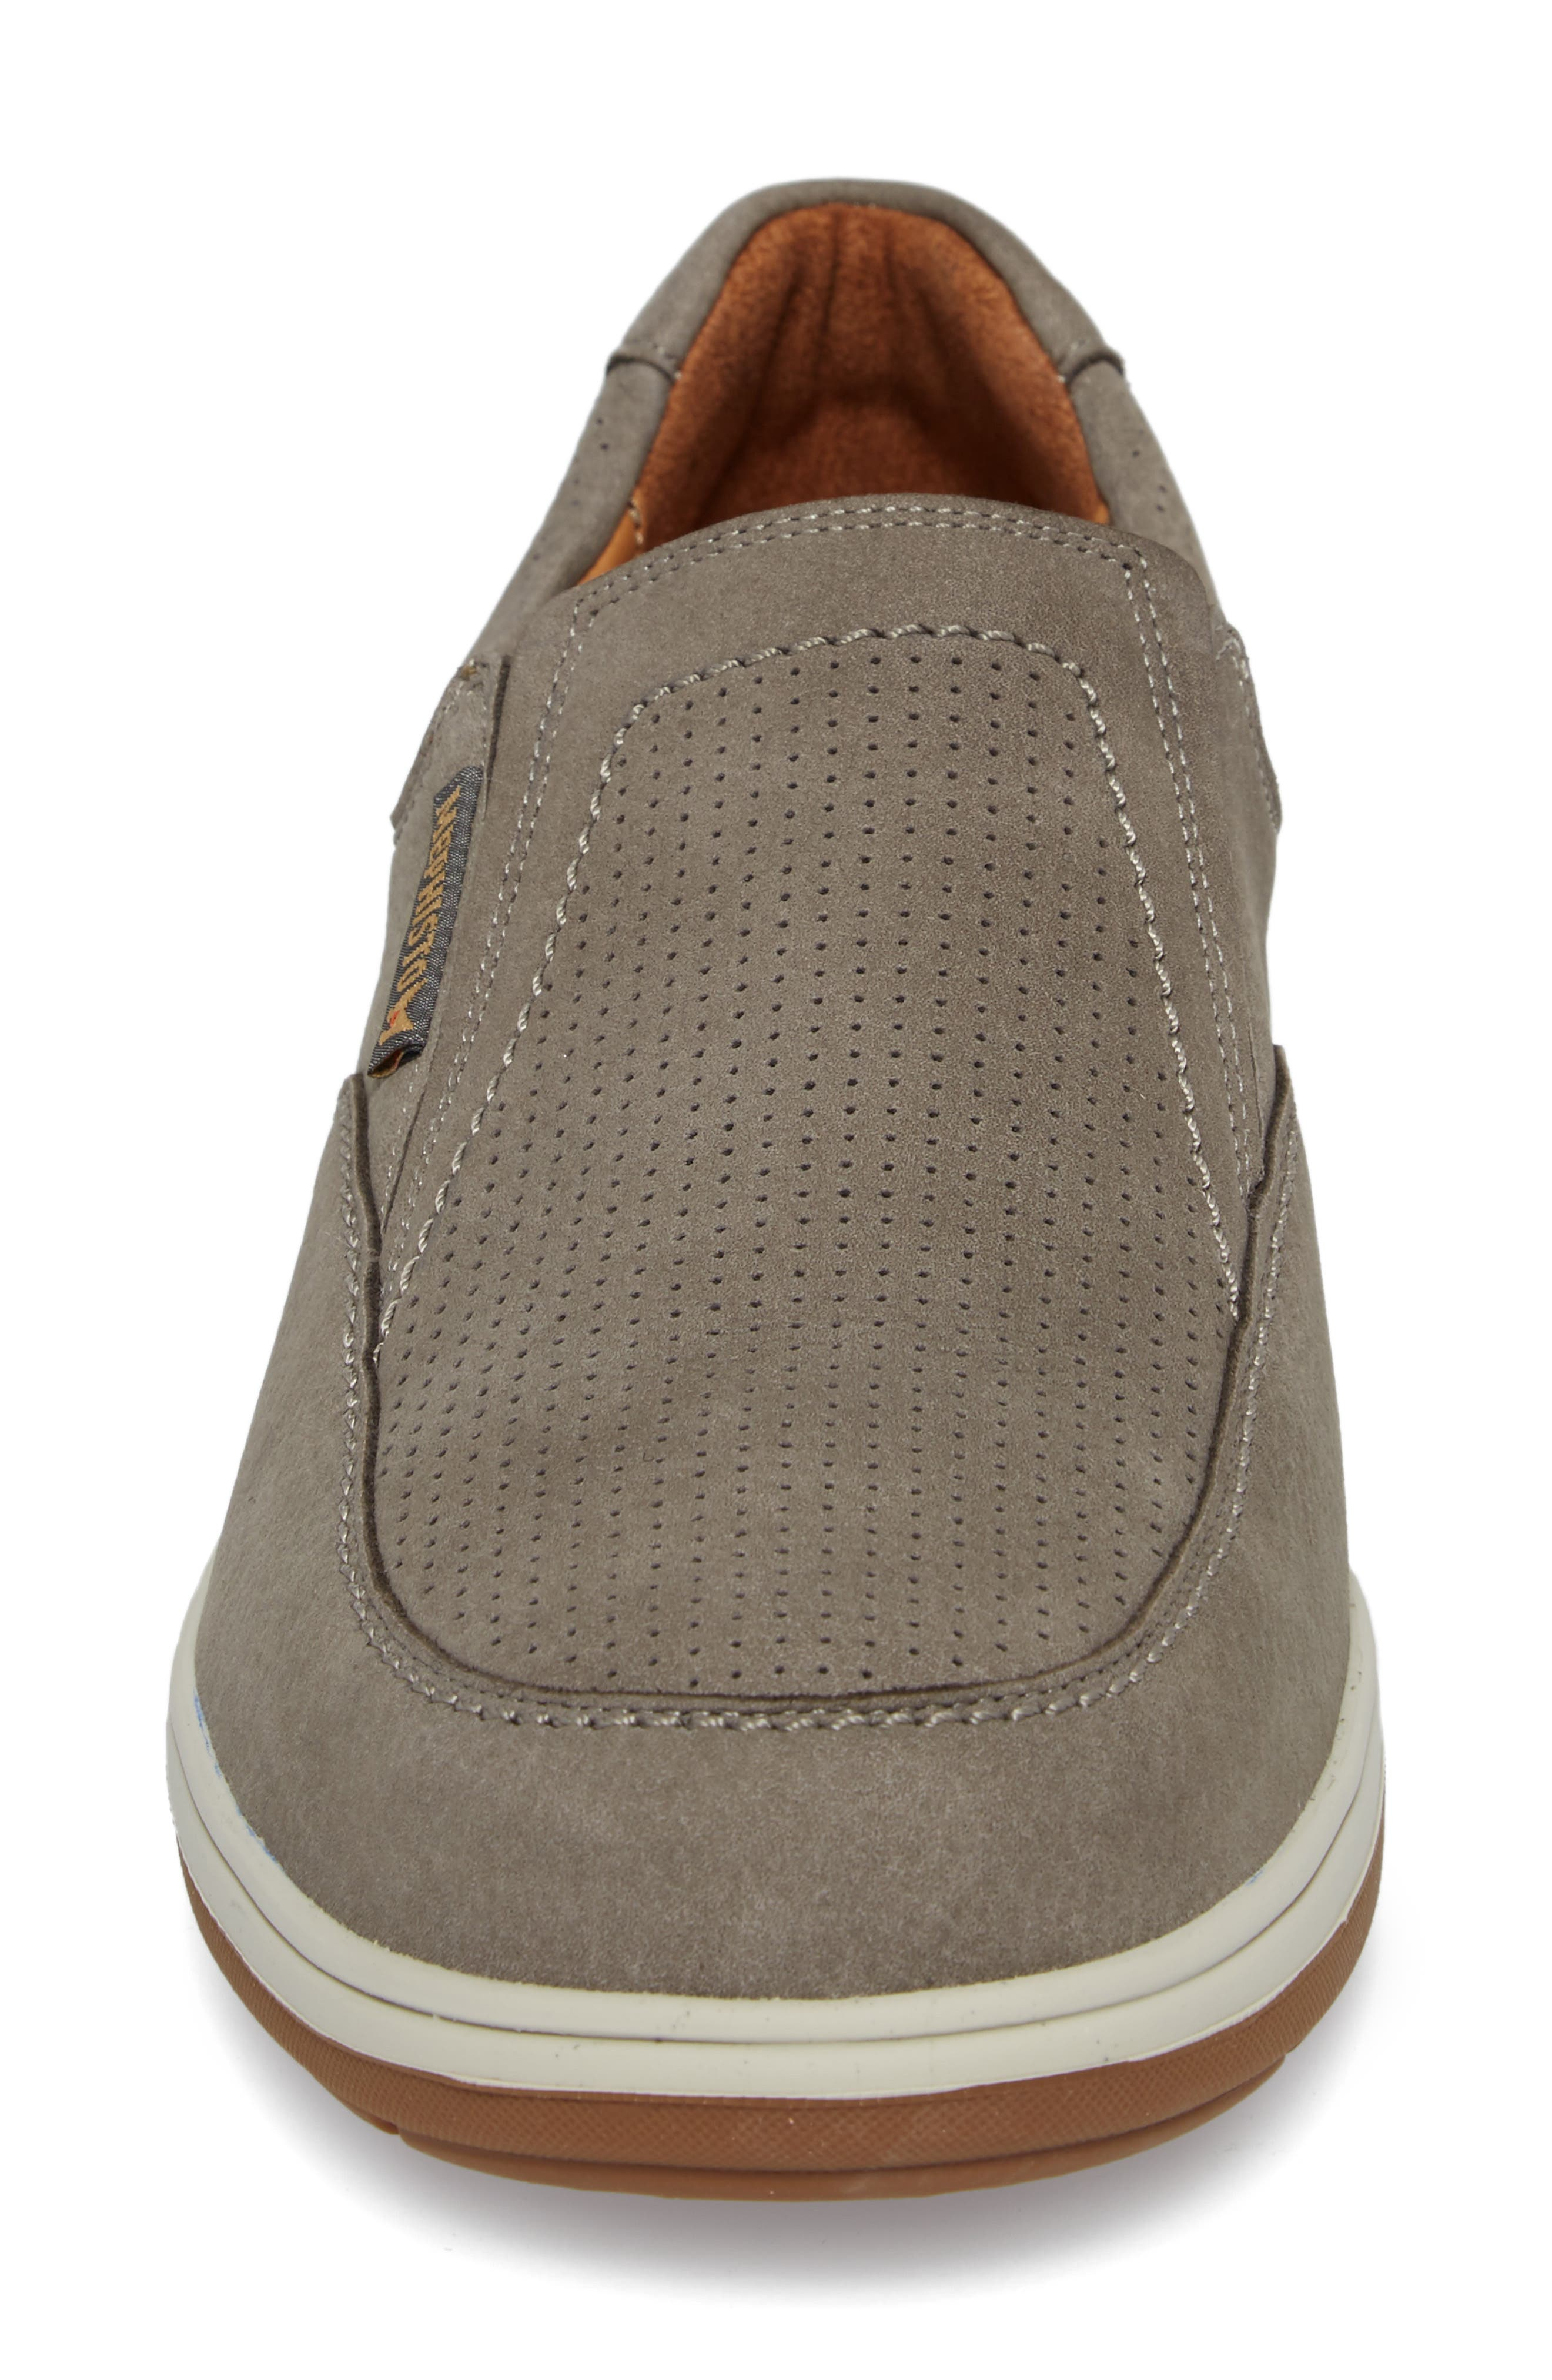 Davy Perforated Slip-On Sneaker,                             Alternate thumbnail 4, color,                             Grey